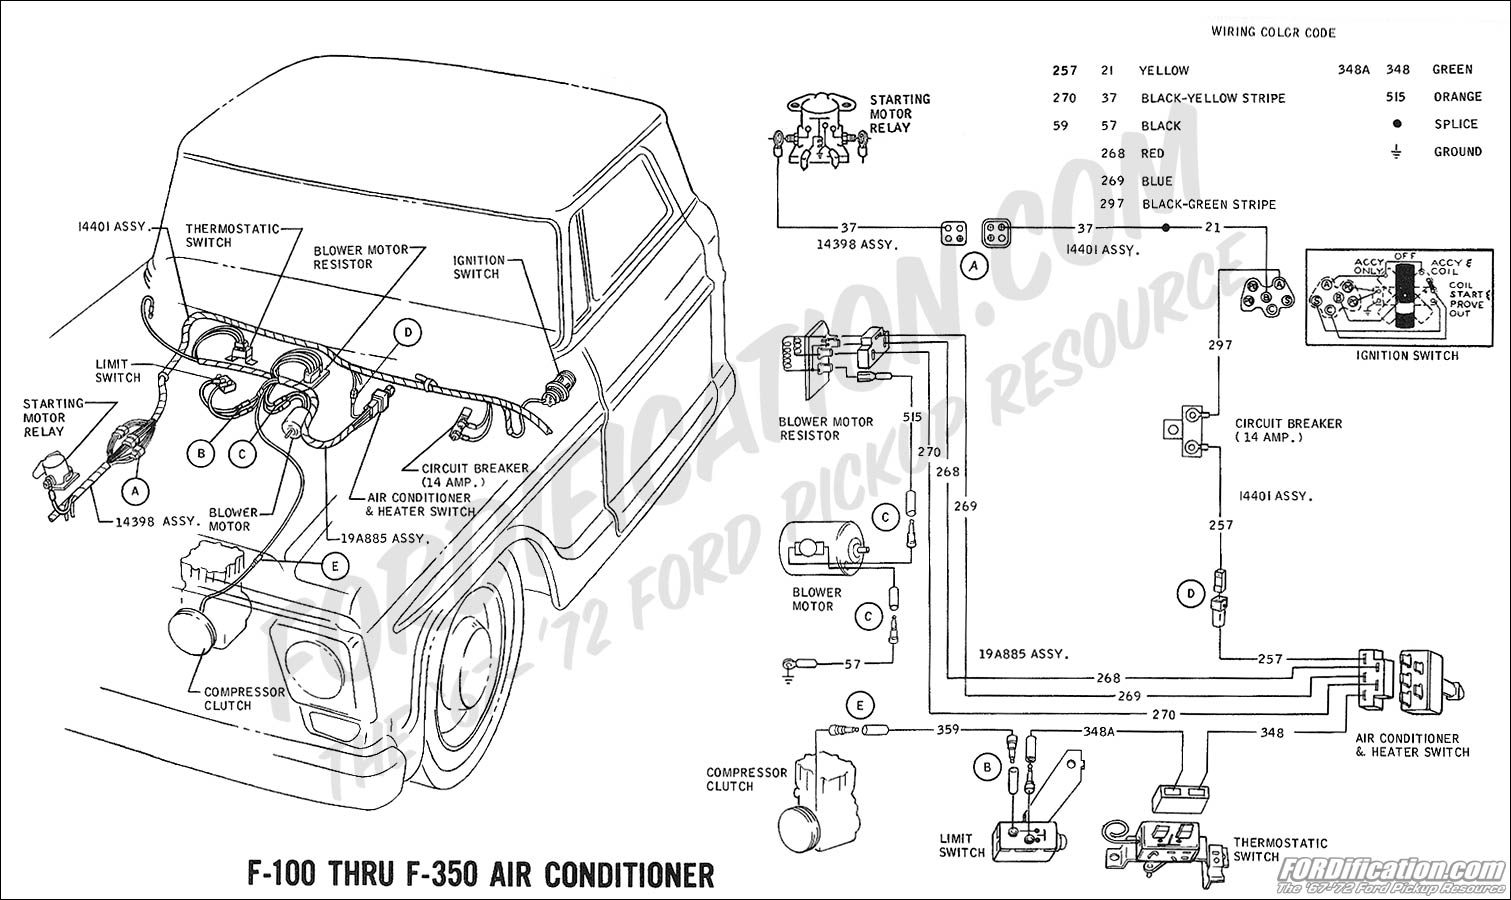 2008 Ford F450 Trailer Wiring Diagram likewise 243447 Trailor Lights additionally Schematics h moreover 2002 F350 Front Hub Diagram furthermore 2014 F350 Fuse Box Diagram Wiring Diagrams 2008 Ford 350. on 2003 ford f350 wiring schematics